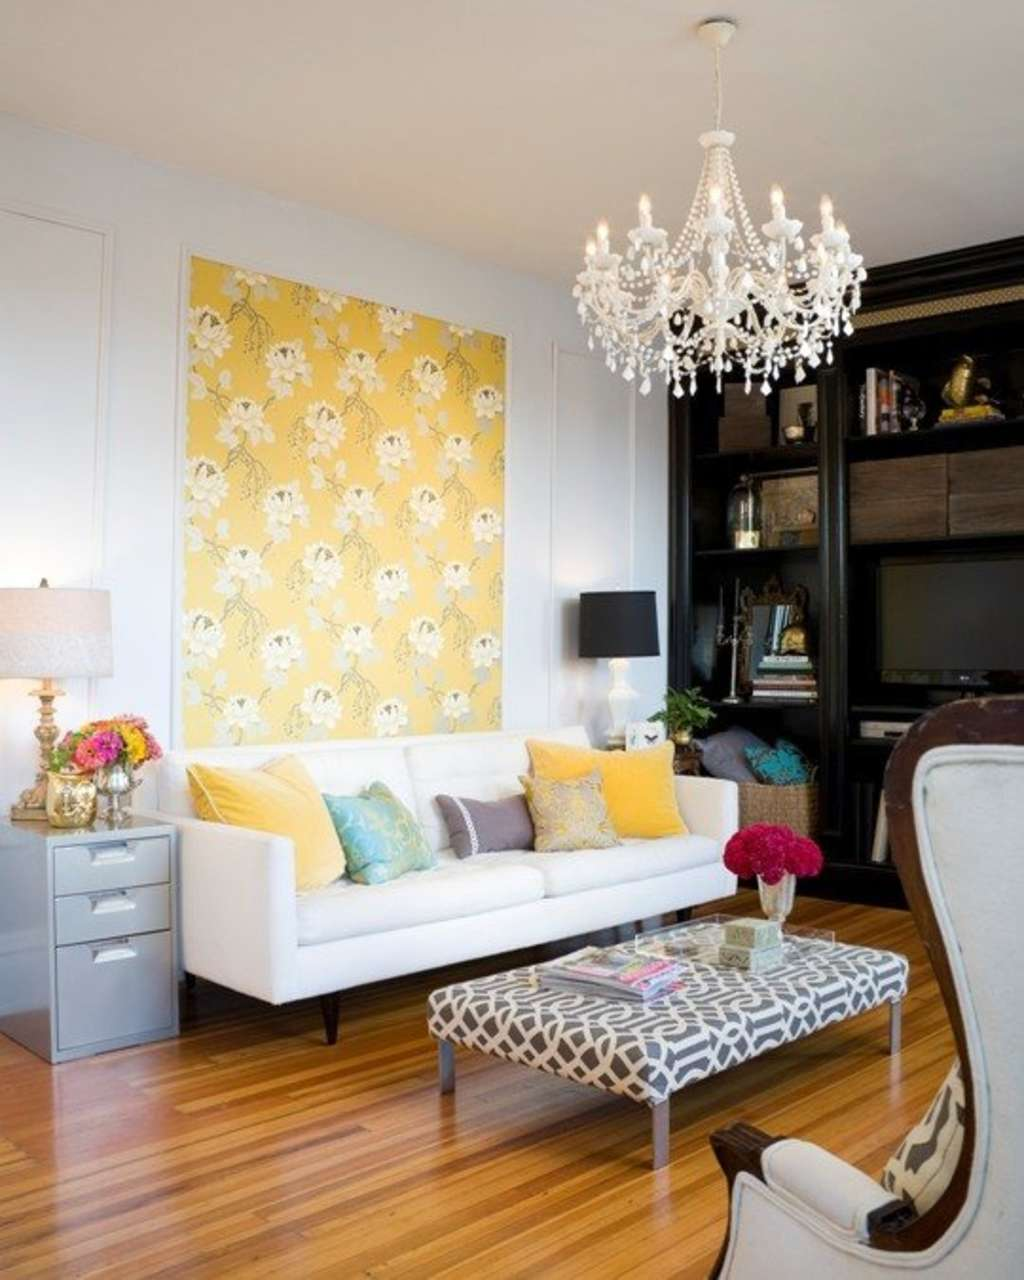 The Look For Less: Summer and Josh's Living Room on a Budget